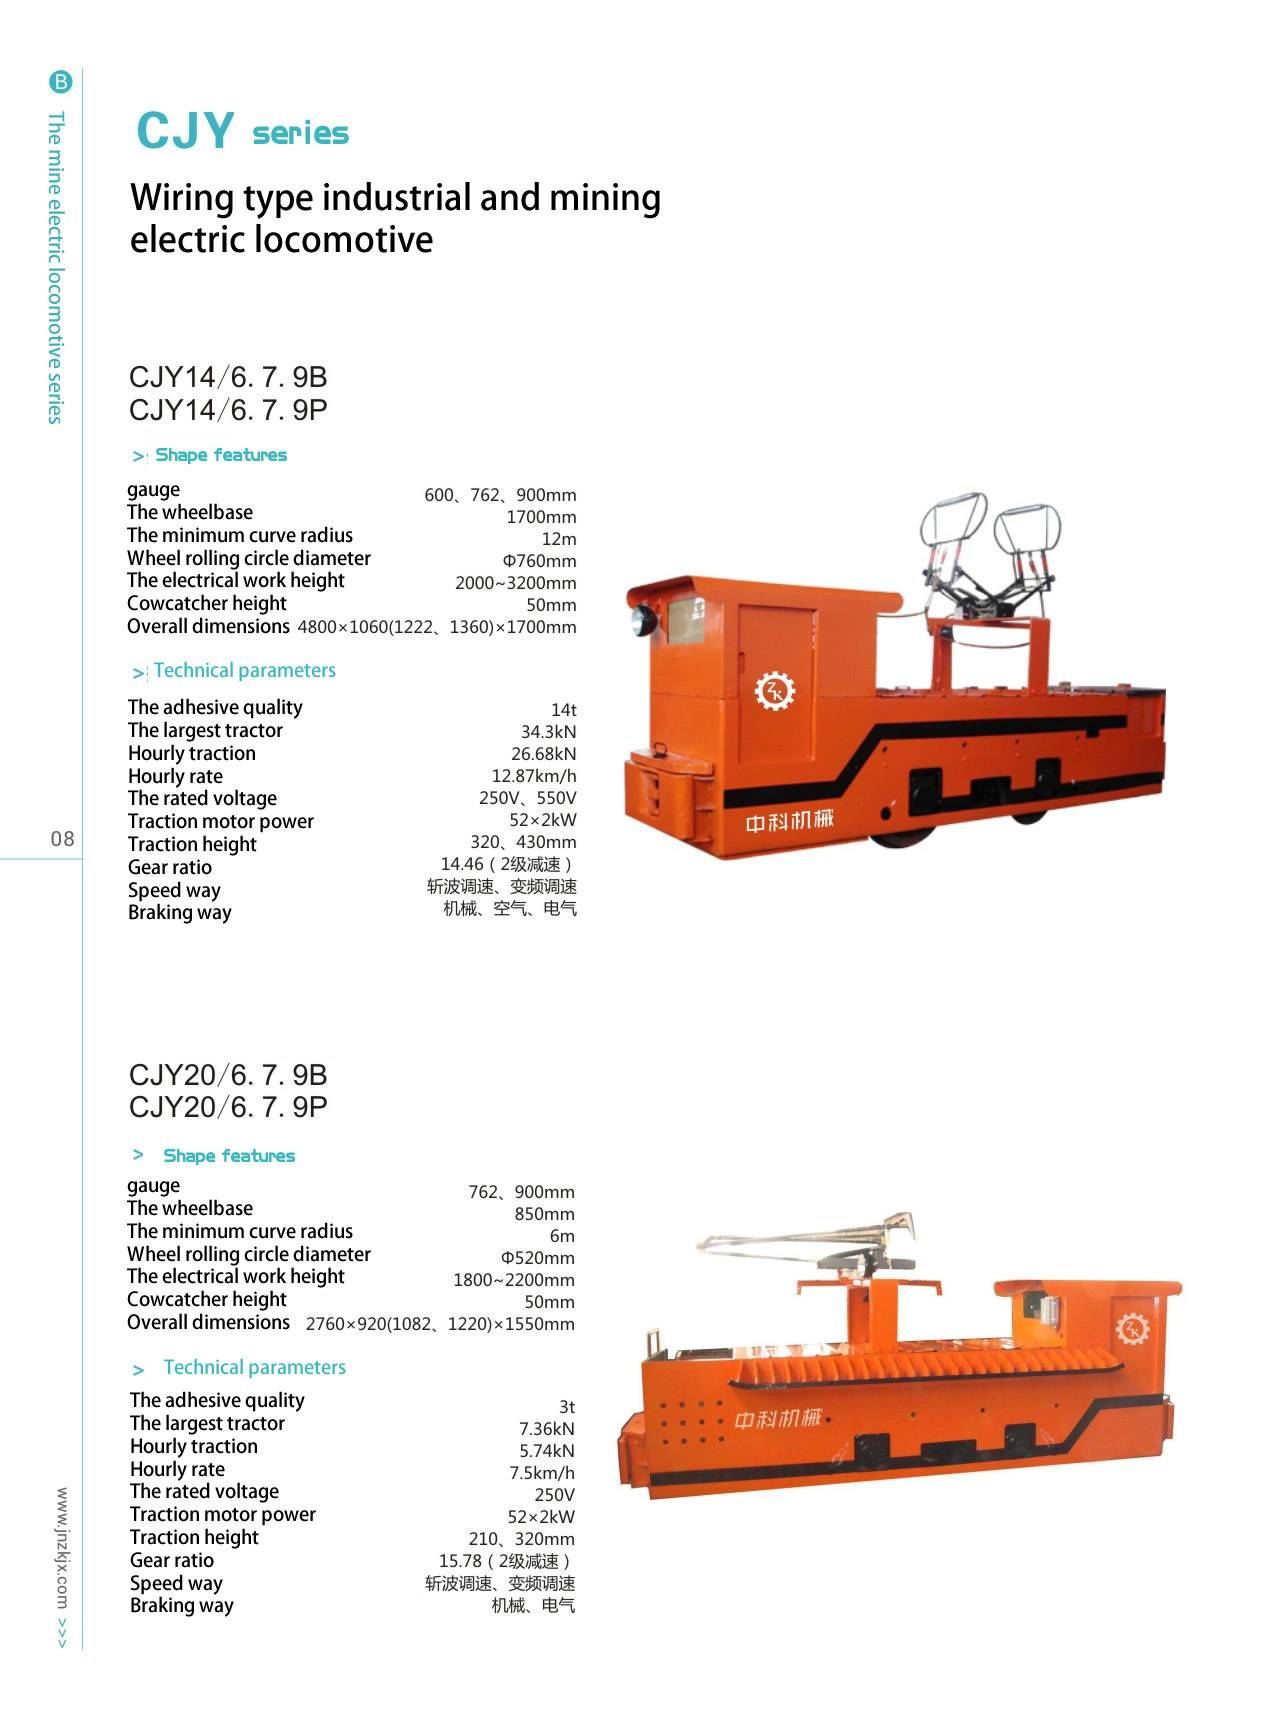 Mine electric locomotive